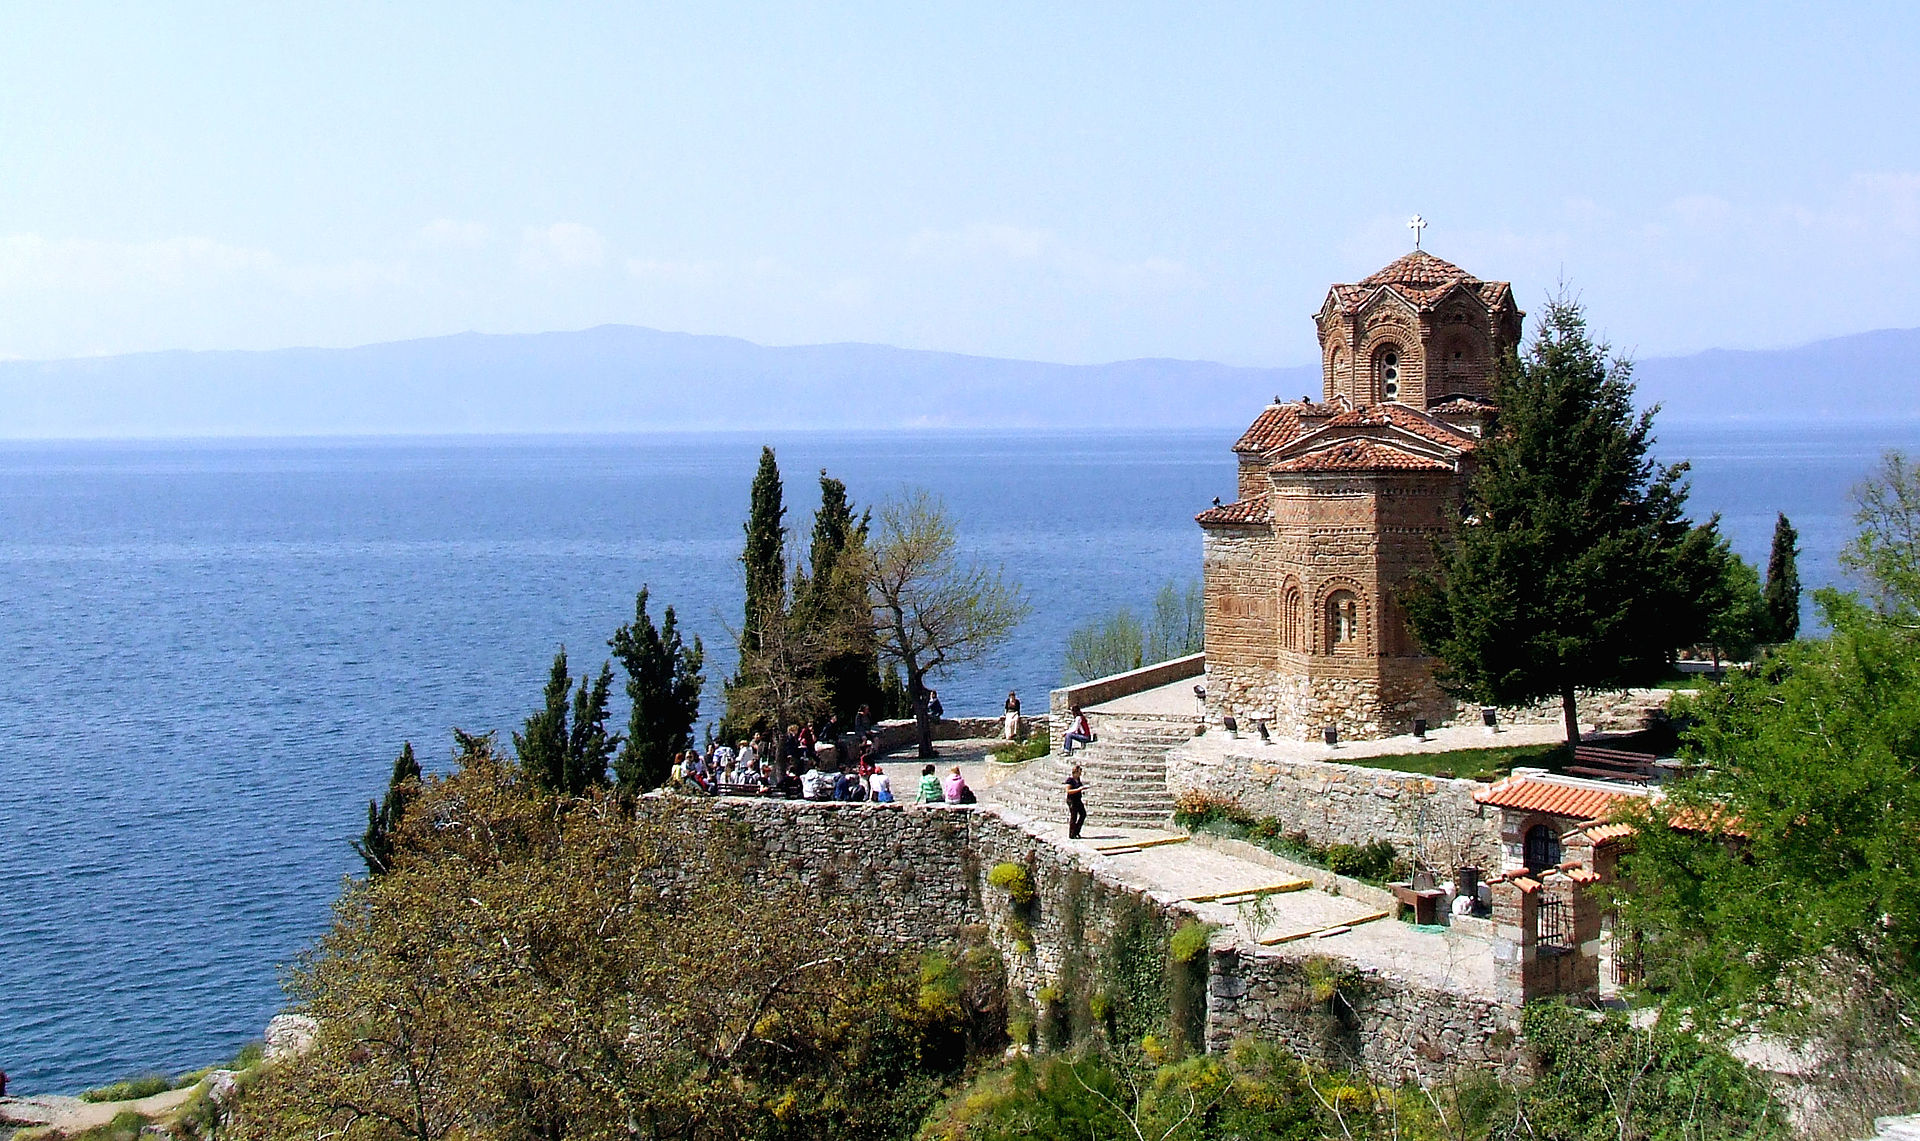 Lake Ohrid straddles the mountainous border between the southwestern region of the Republic of Macedonia and eastern Albania.